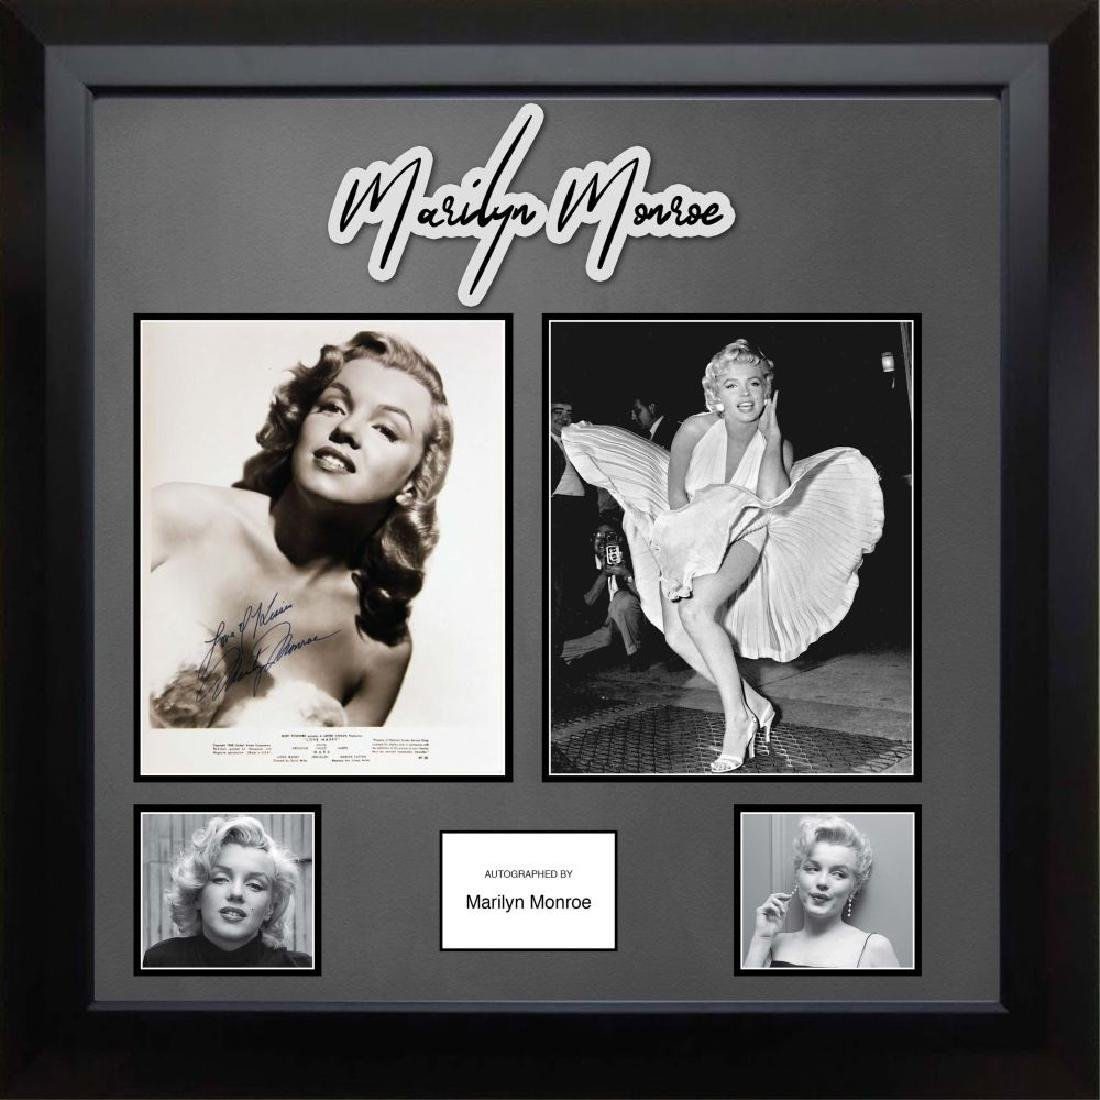 Marilyn Monroe Signed Photo Collage